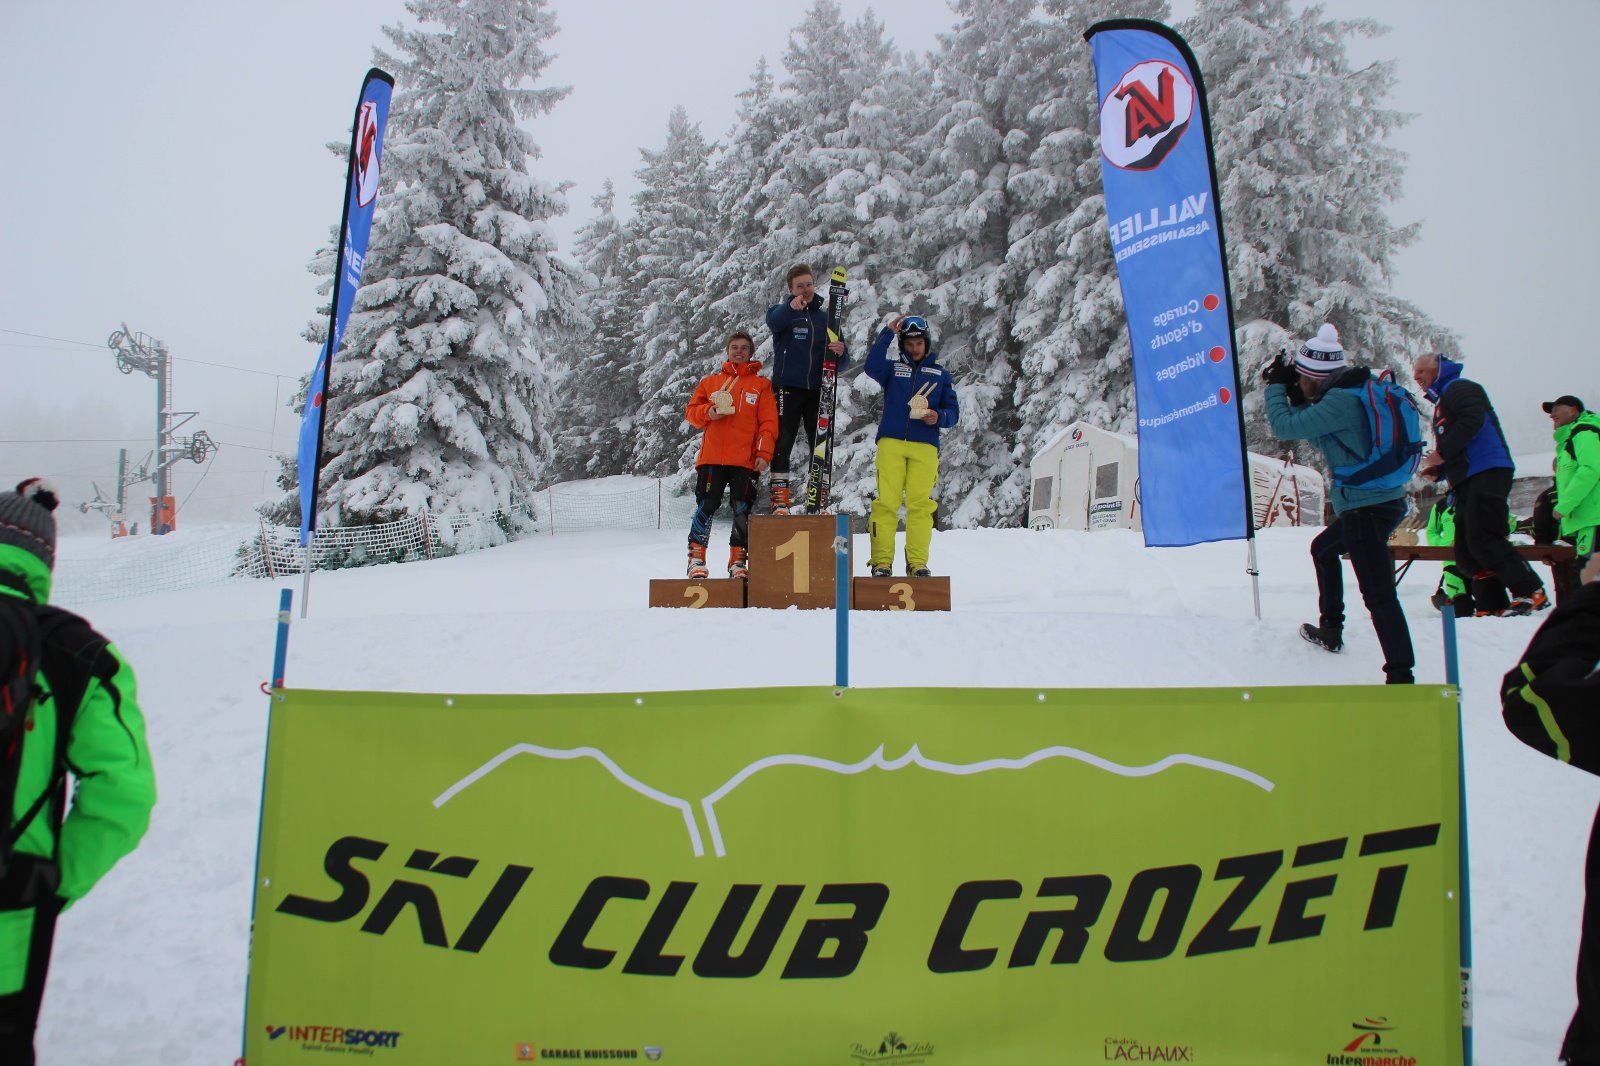 Victory for Alec Dixon at the FIS race in Lelex Mont Jura, France